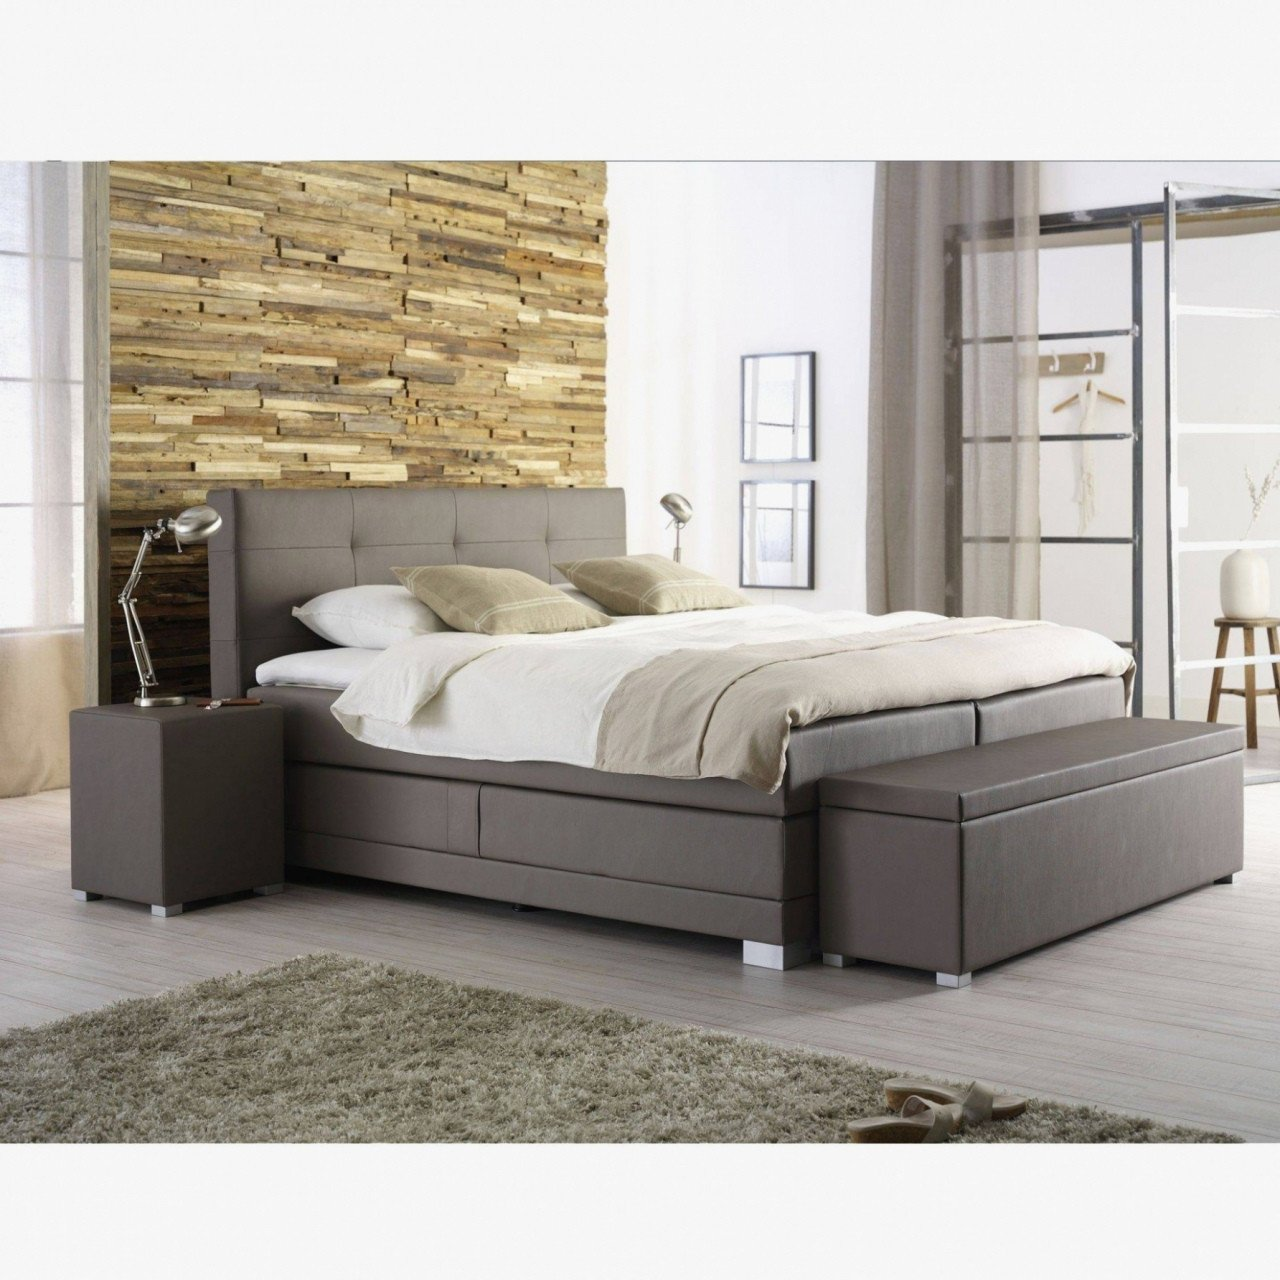 King Bedroom Set with Mattress New Bed with Drawers Under — Procura Home Blog